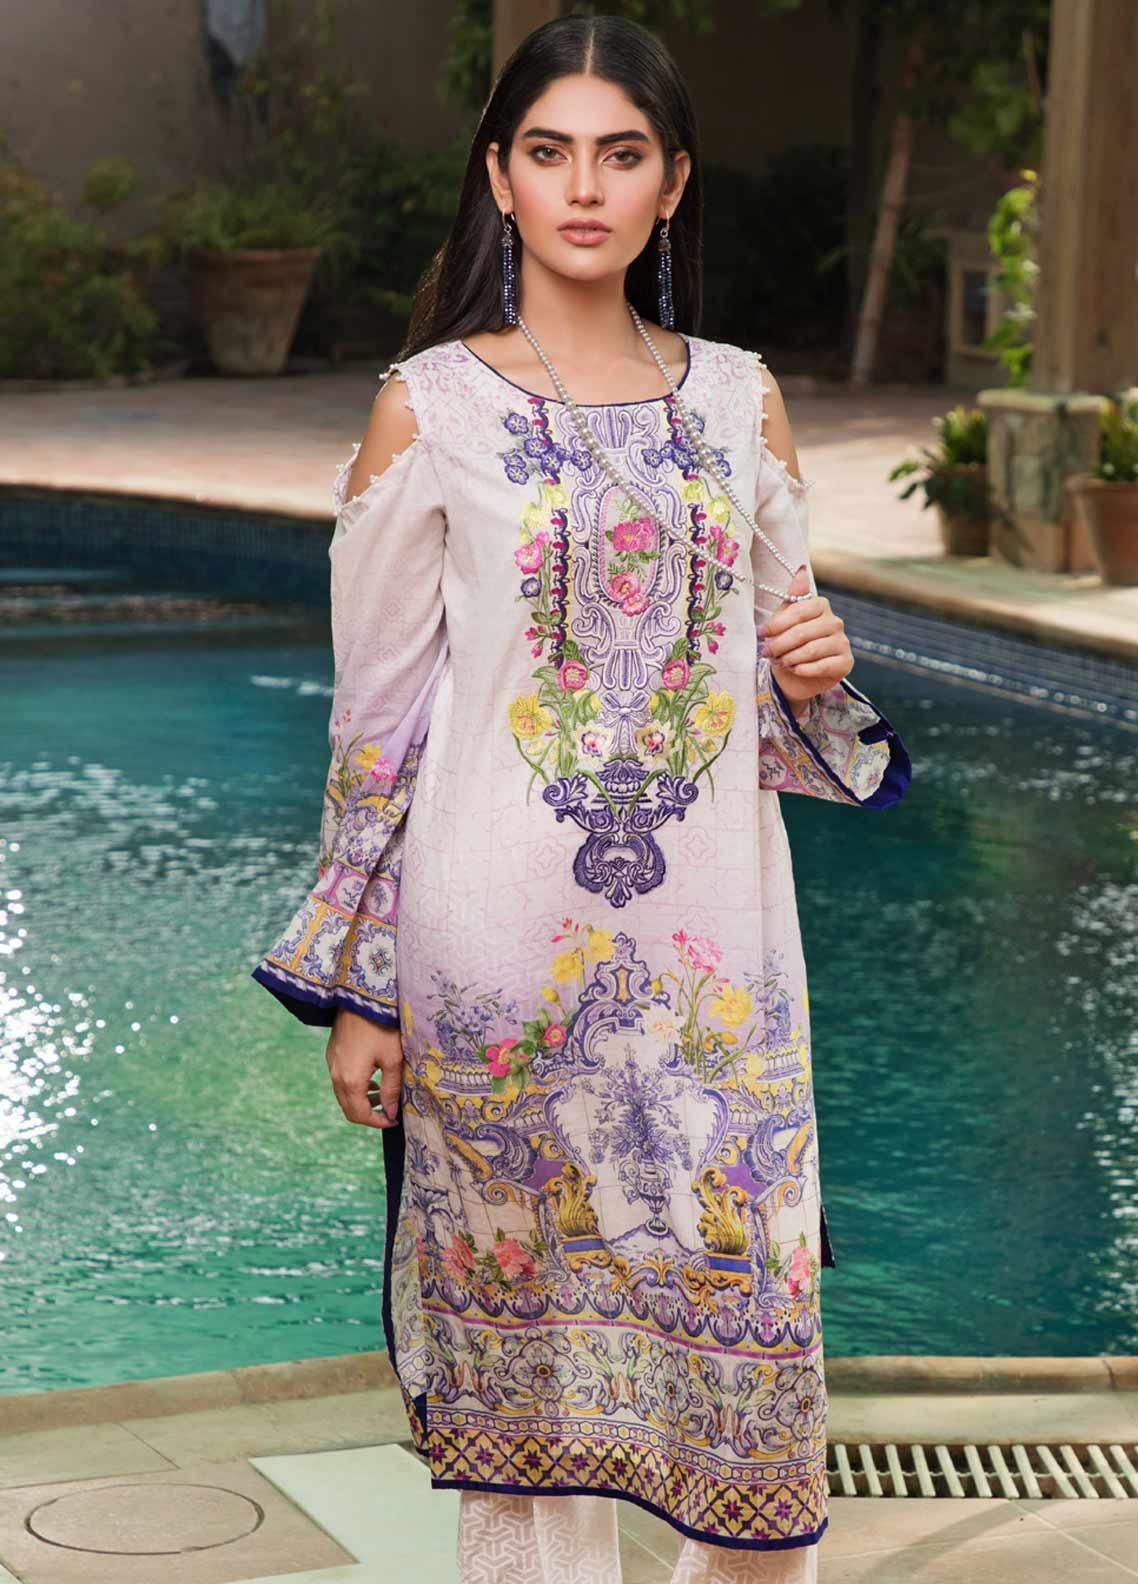 Malhar Florence Embroidered Lawn Unstitched Kurties MLF19K 05 - Mid Summer Collection